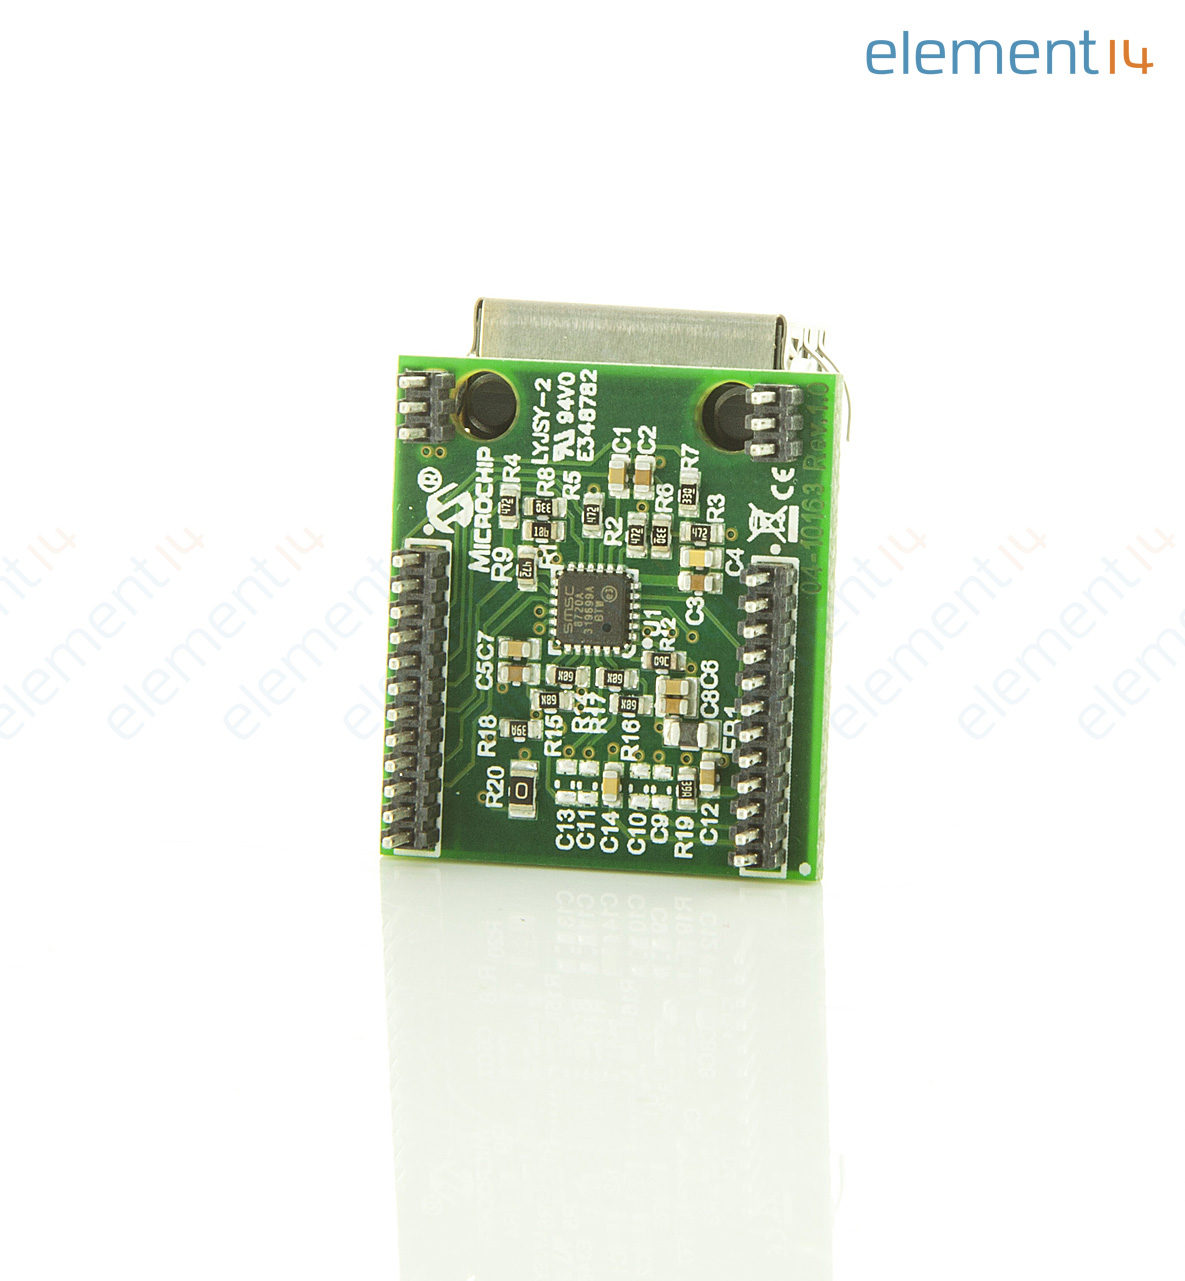 Ac320004 3 Microchip Daughter Board 10base T 100base Tx Ethernet Green Electrical Circuit With Microchips And Transistors Stock